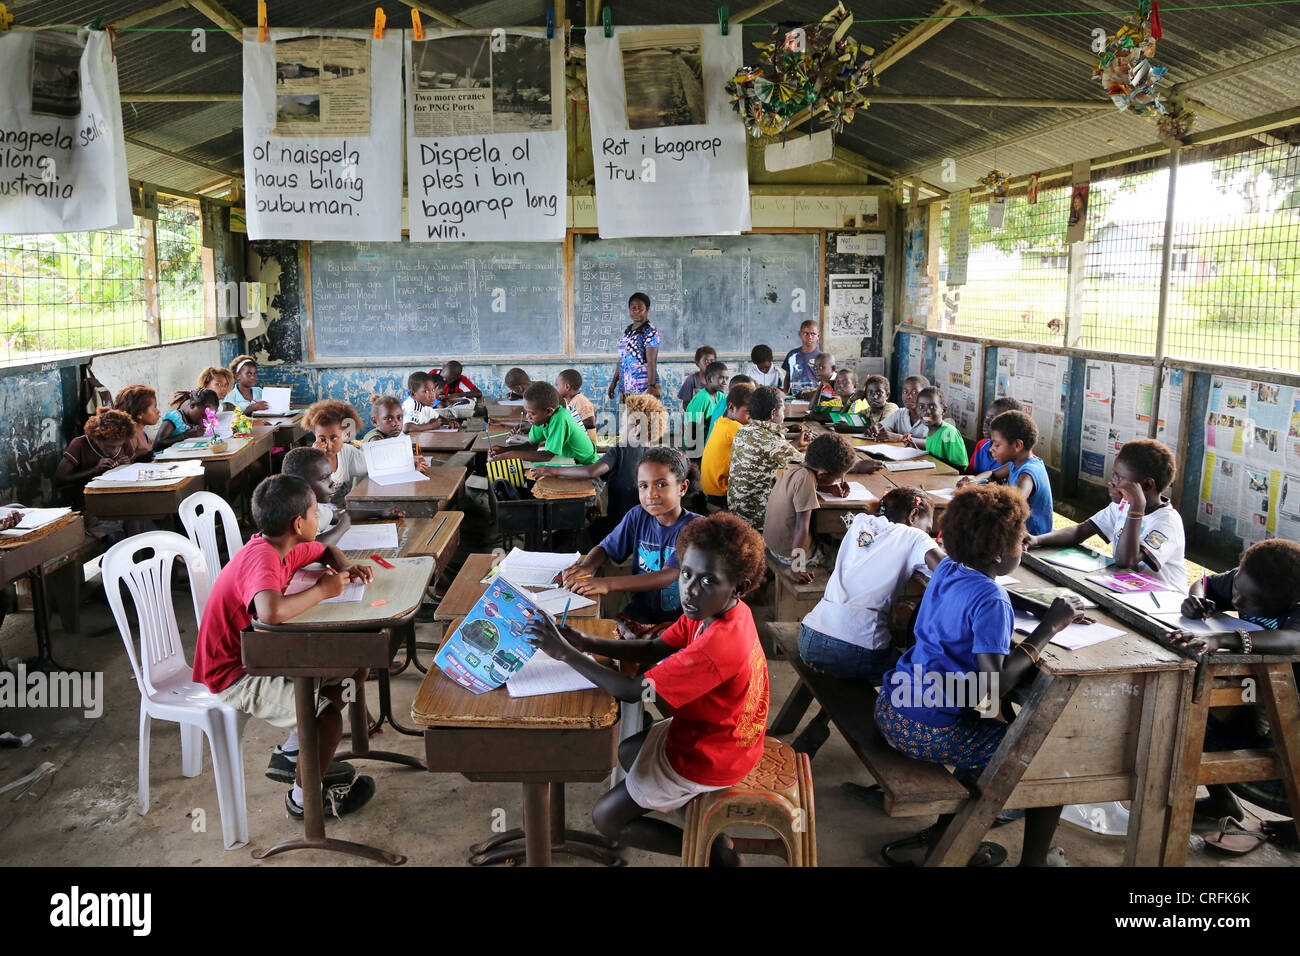 Pupils in a classroom of a primary school in Buka, Bougainville Island, Papua Neuguinea - Stock Image